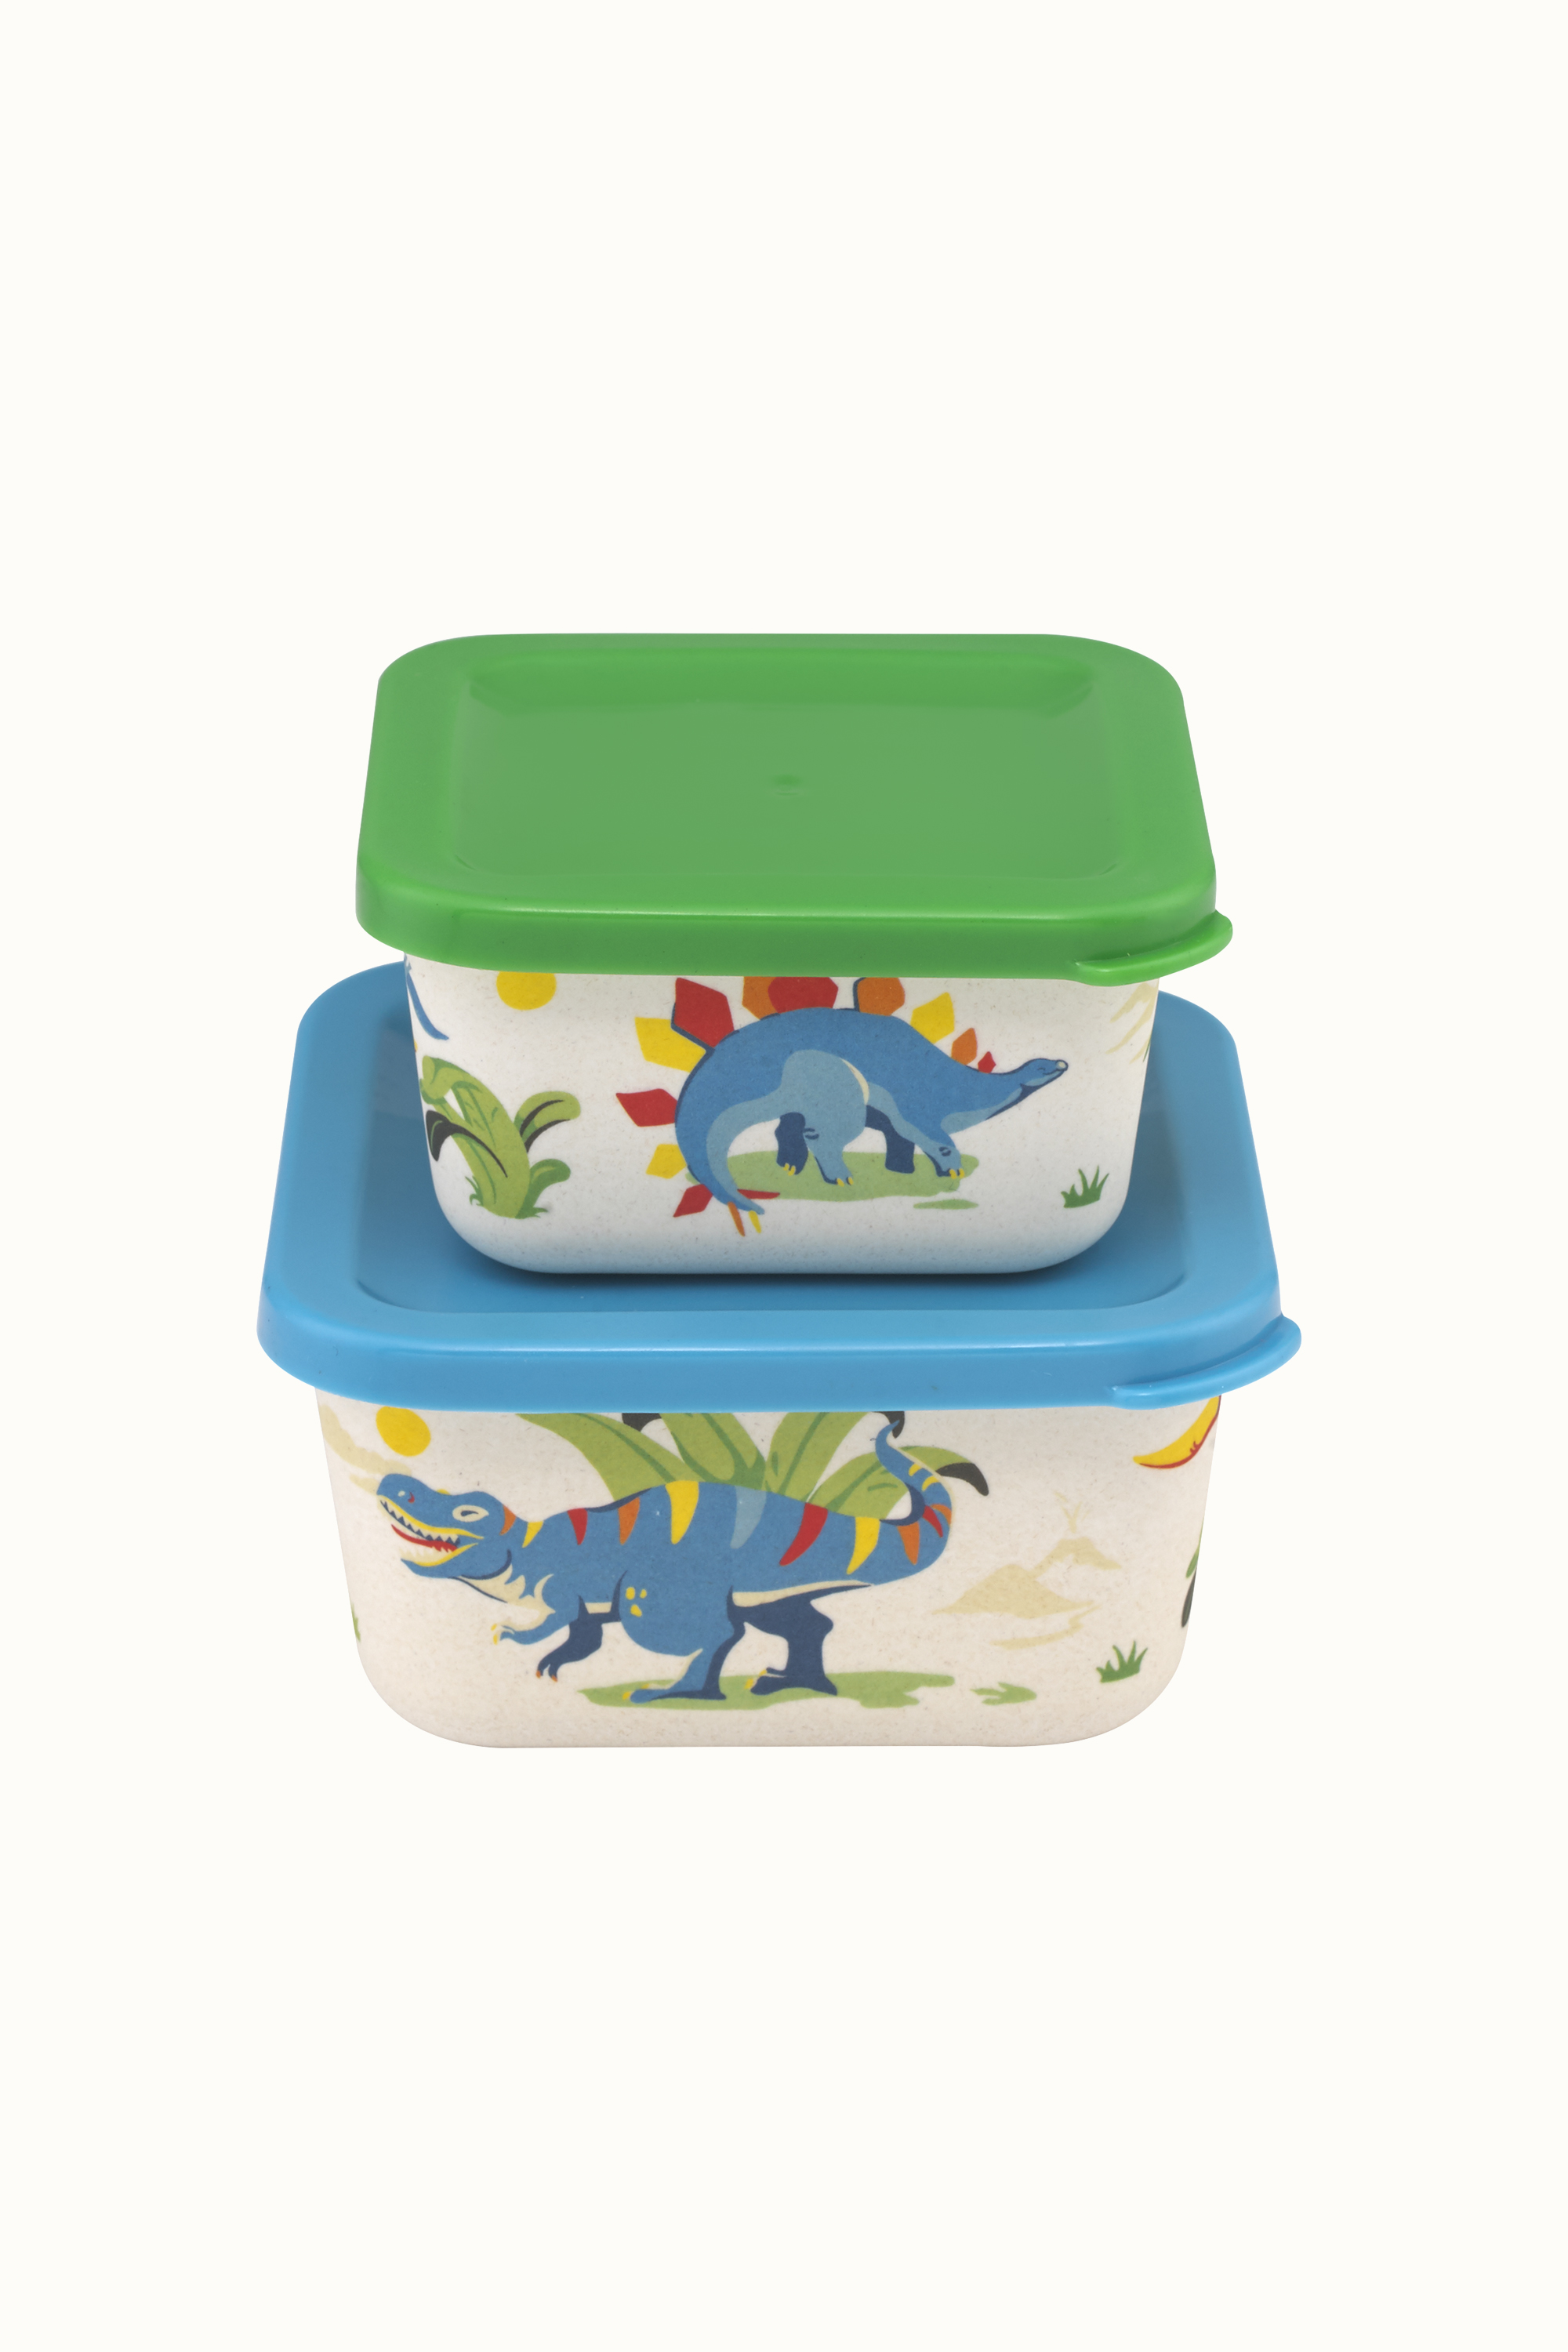 Cath Kidston Dinosaur Jungle Snack Boxes in Pale Green